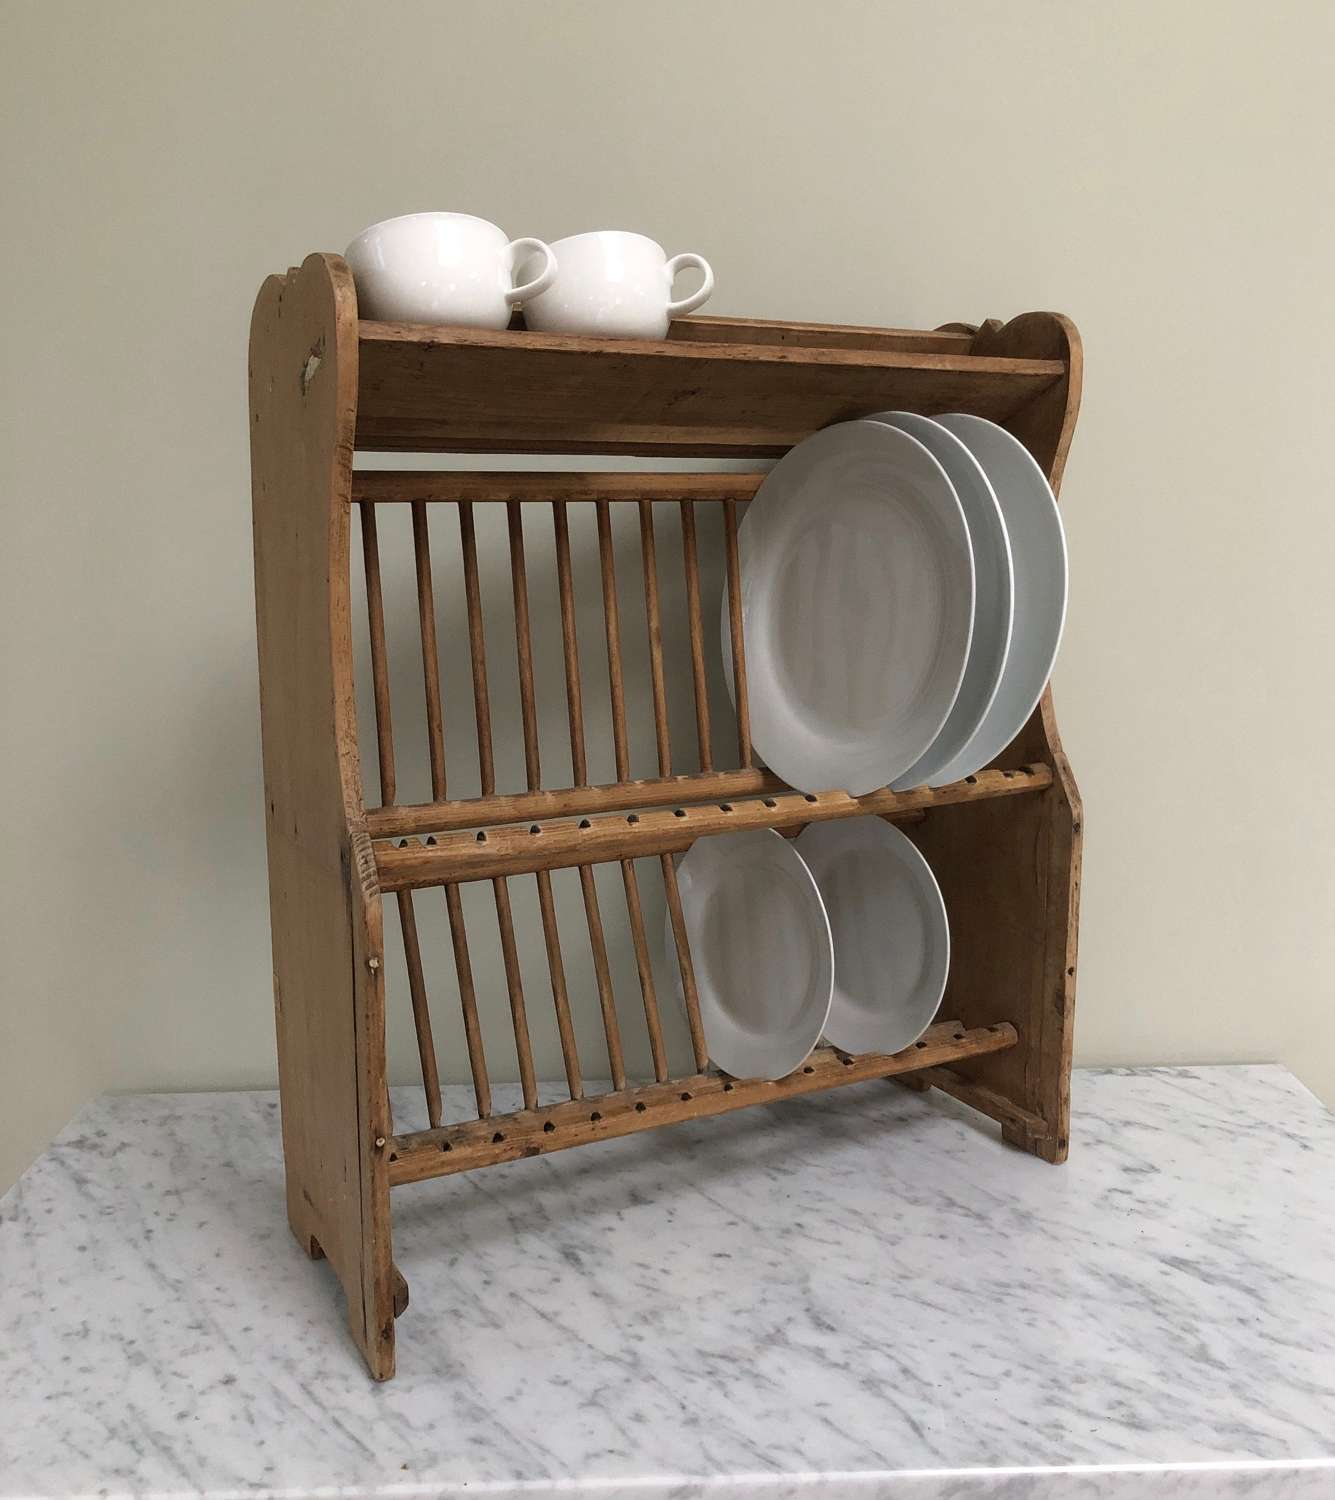 Early 20th Century Two Tier Pine Plate Rack with Cup Shelf to Top